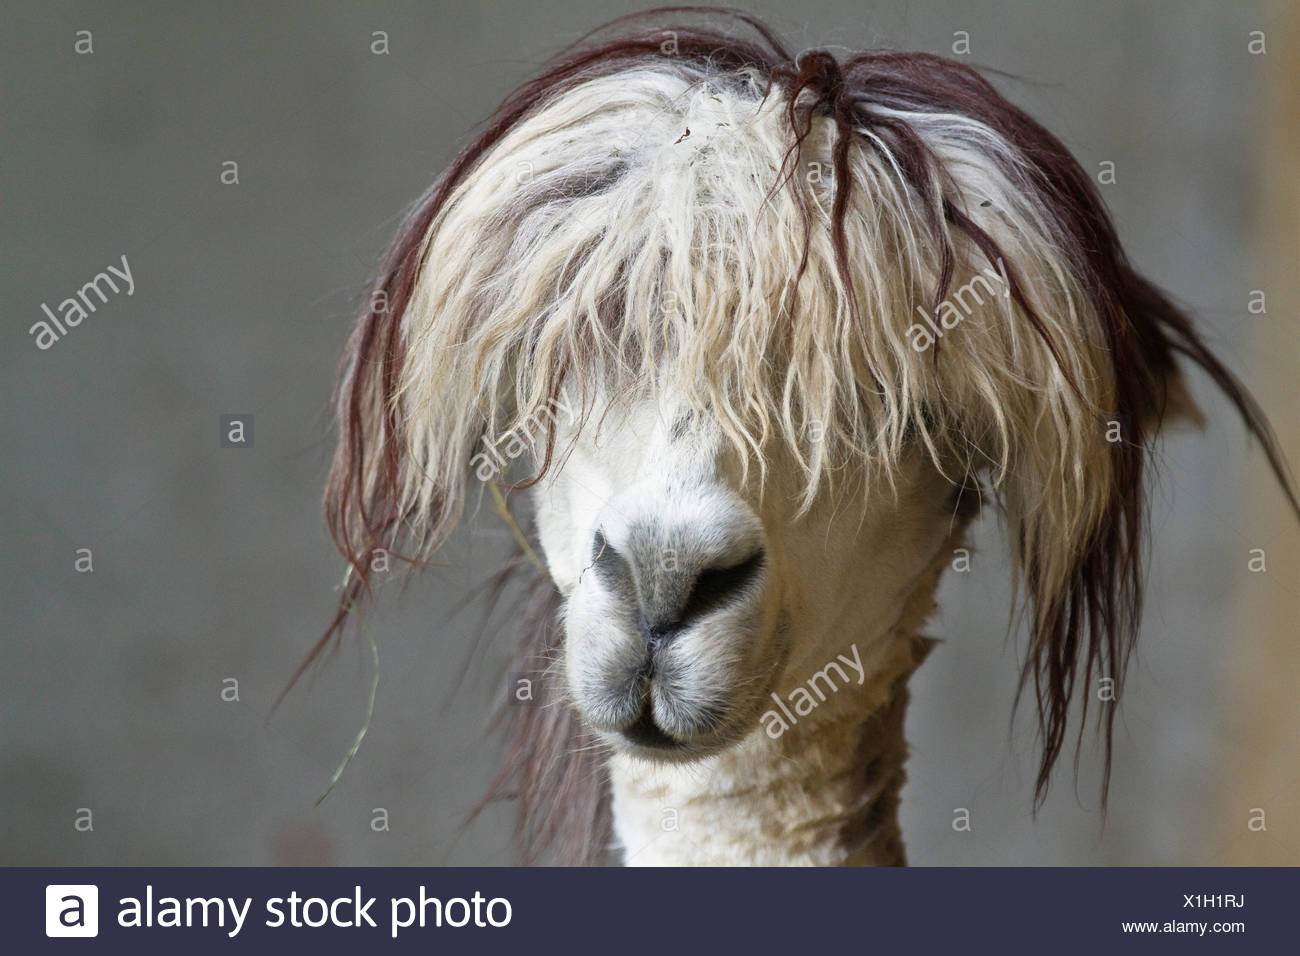 Lama pacos, alpaca with funny hairstyle in a zoo, Andes, South America, America Stock Photo